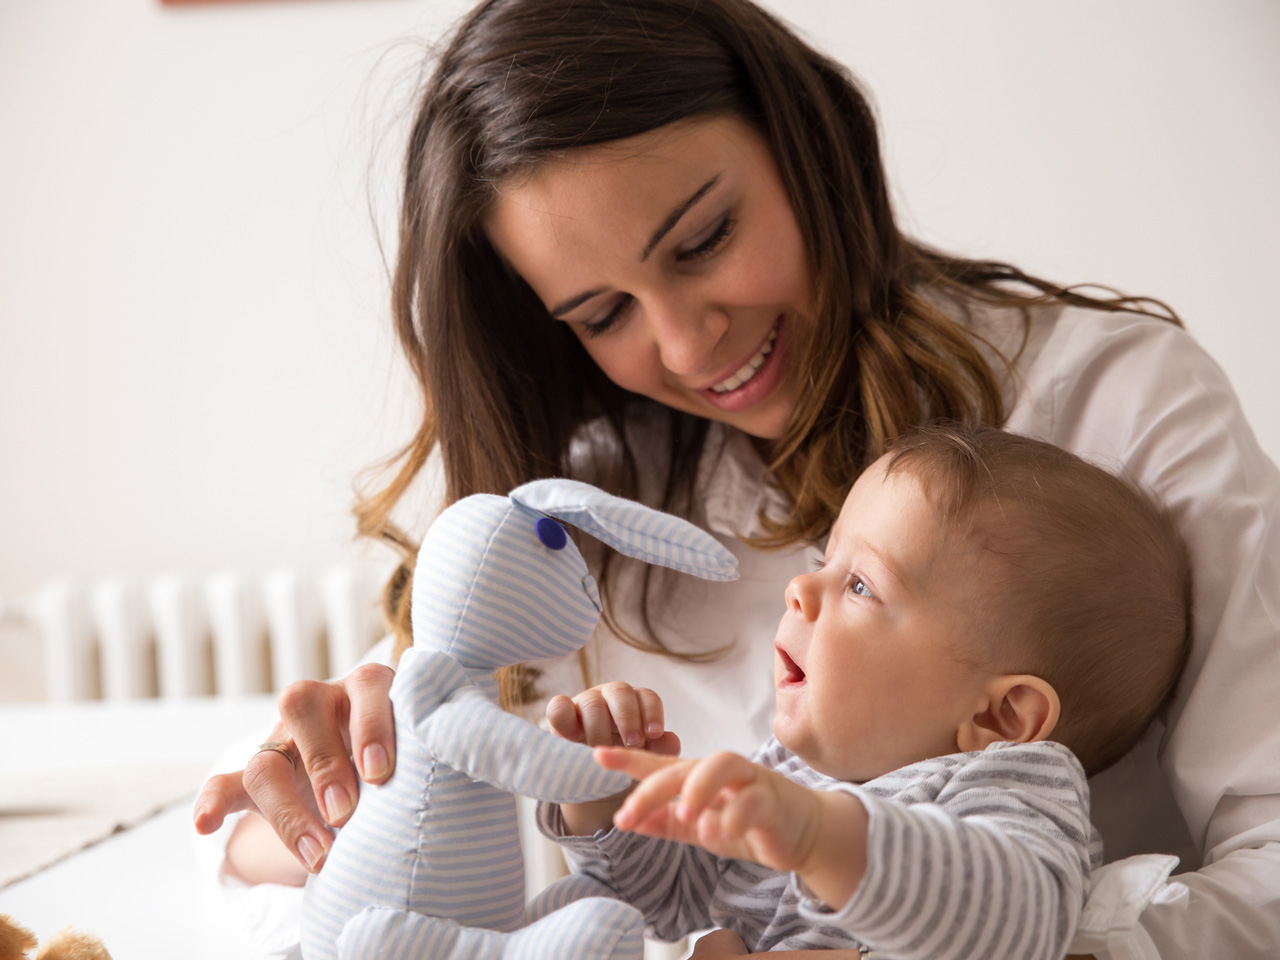 Woman holding her baby and putting a stuffed rabbit to his face